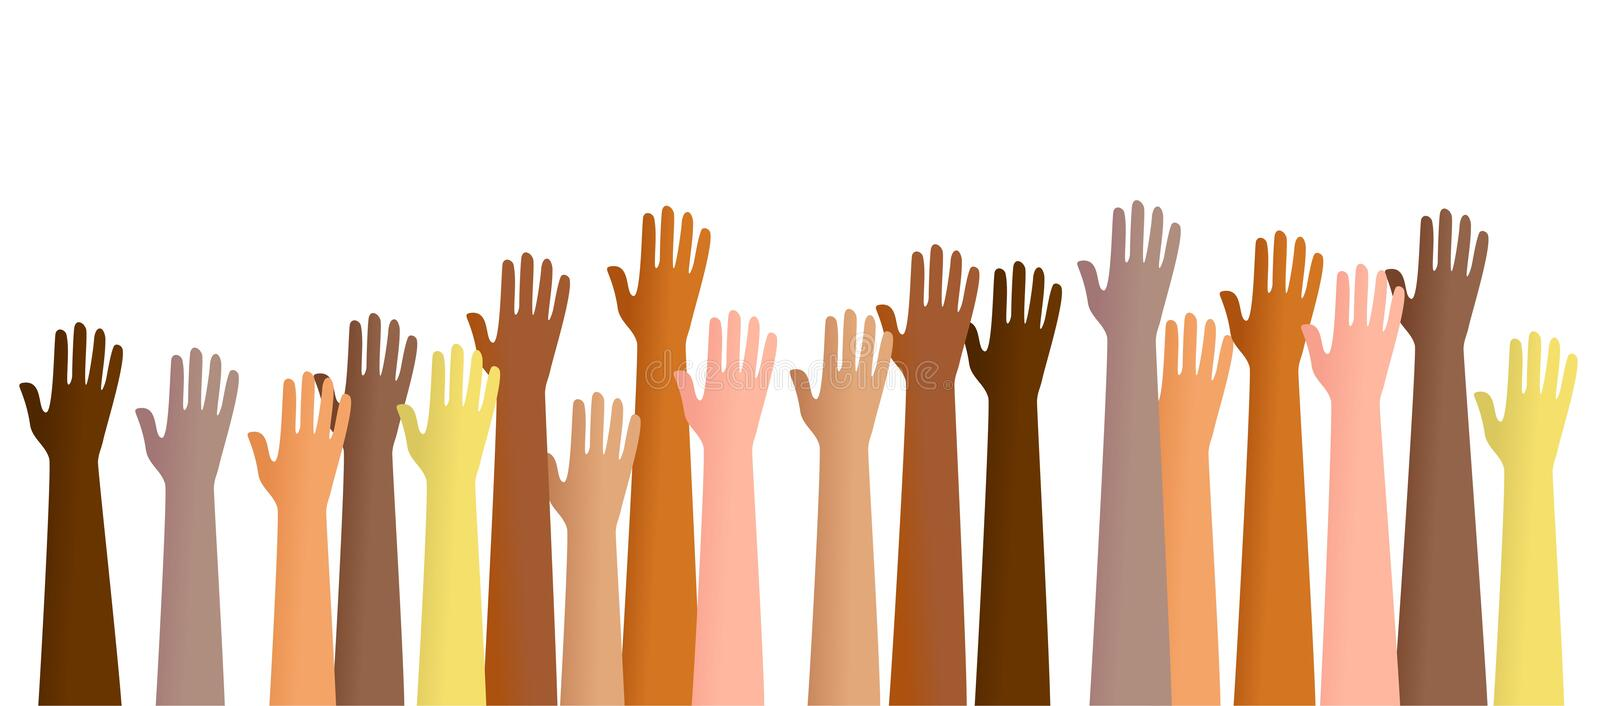 Raised hands stock illustration